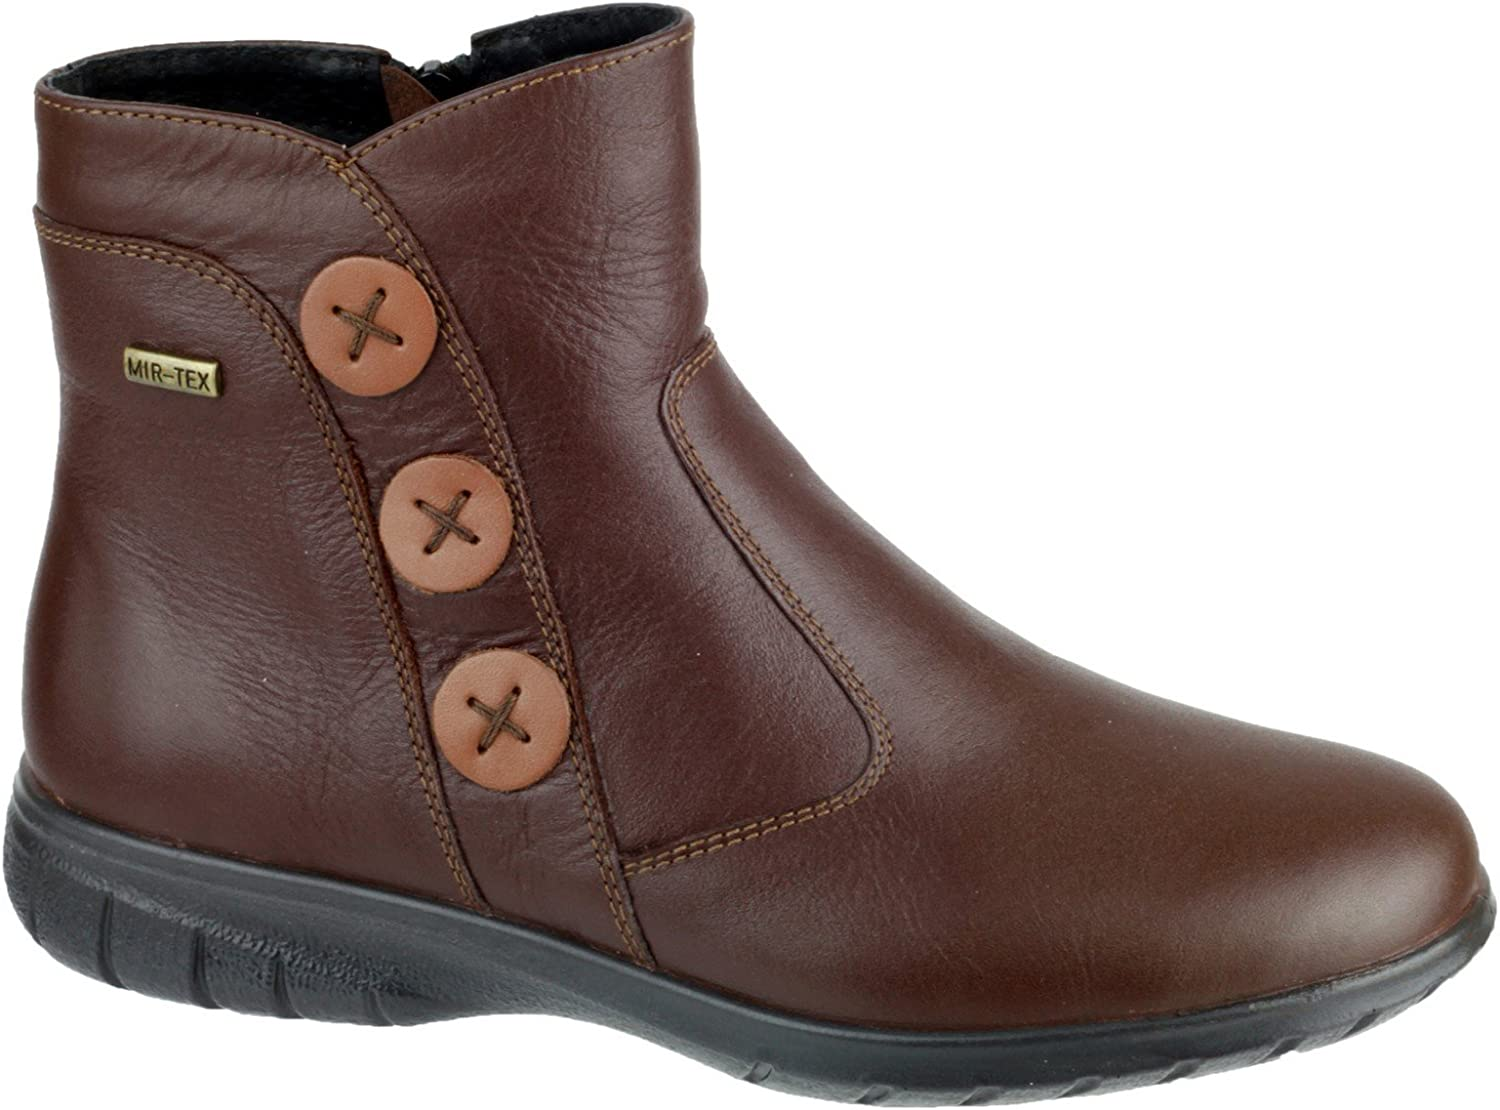 Cotswold kvinnor Dowdswell Dowdswell Dowdswell läder Boot  lagreklam